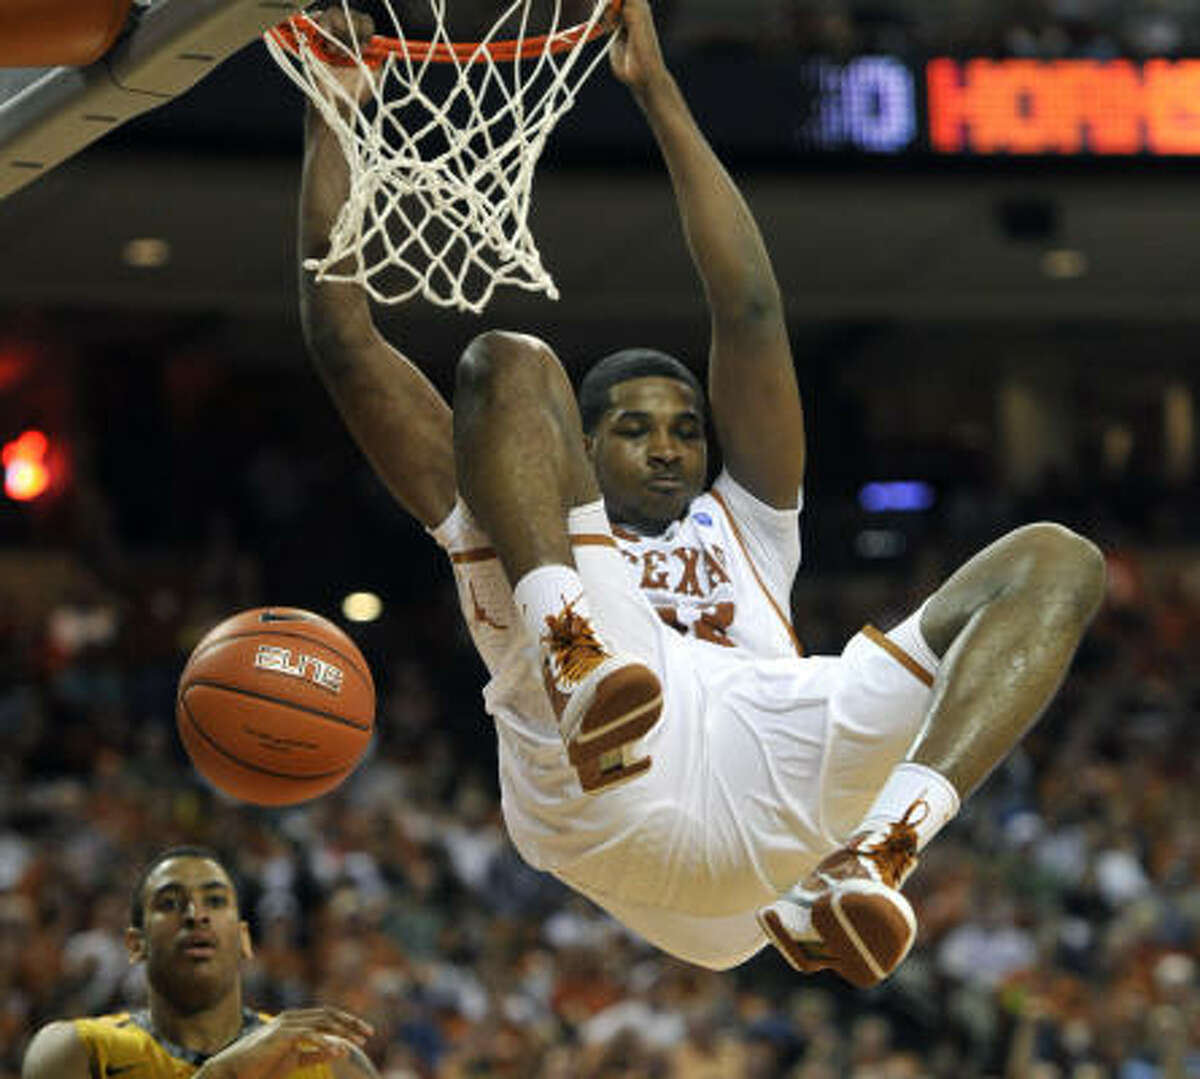 Jan. 29: No. 7 Texas 71, No. 11 Missouri 58 Texas forward Tristan Thompson hangs from the rim after dunking against Missouri center Steve Moore during the second half of Saturday's game in Austin.